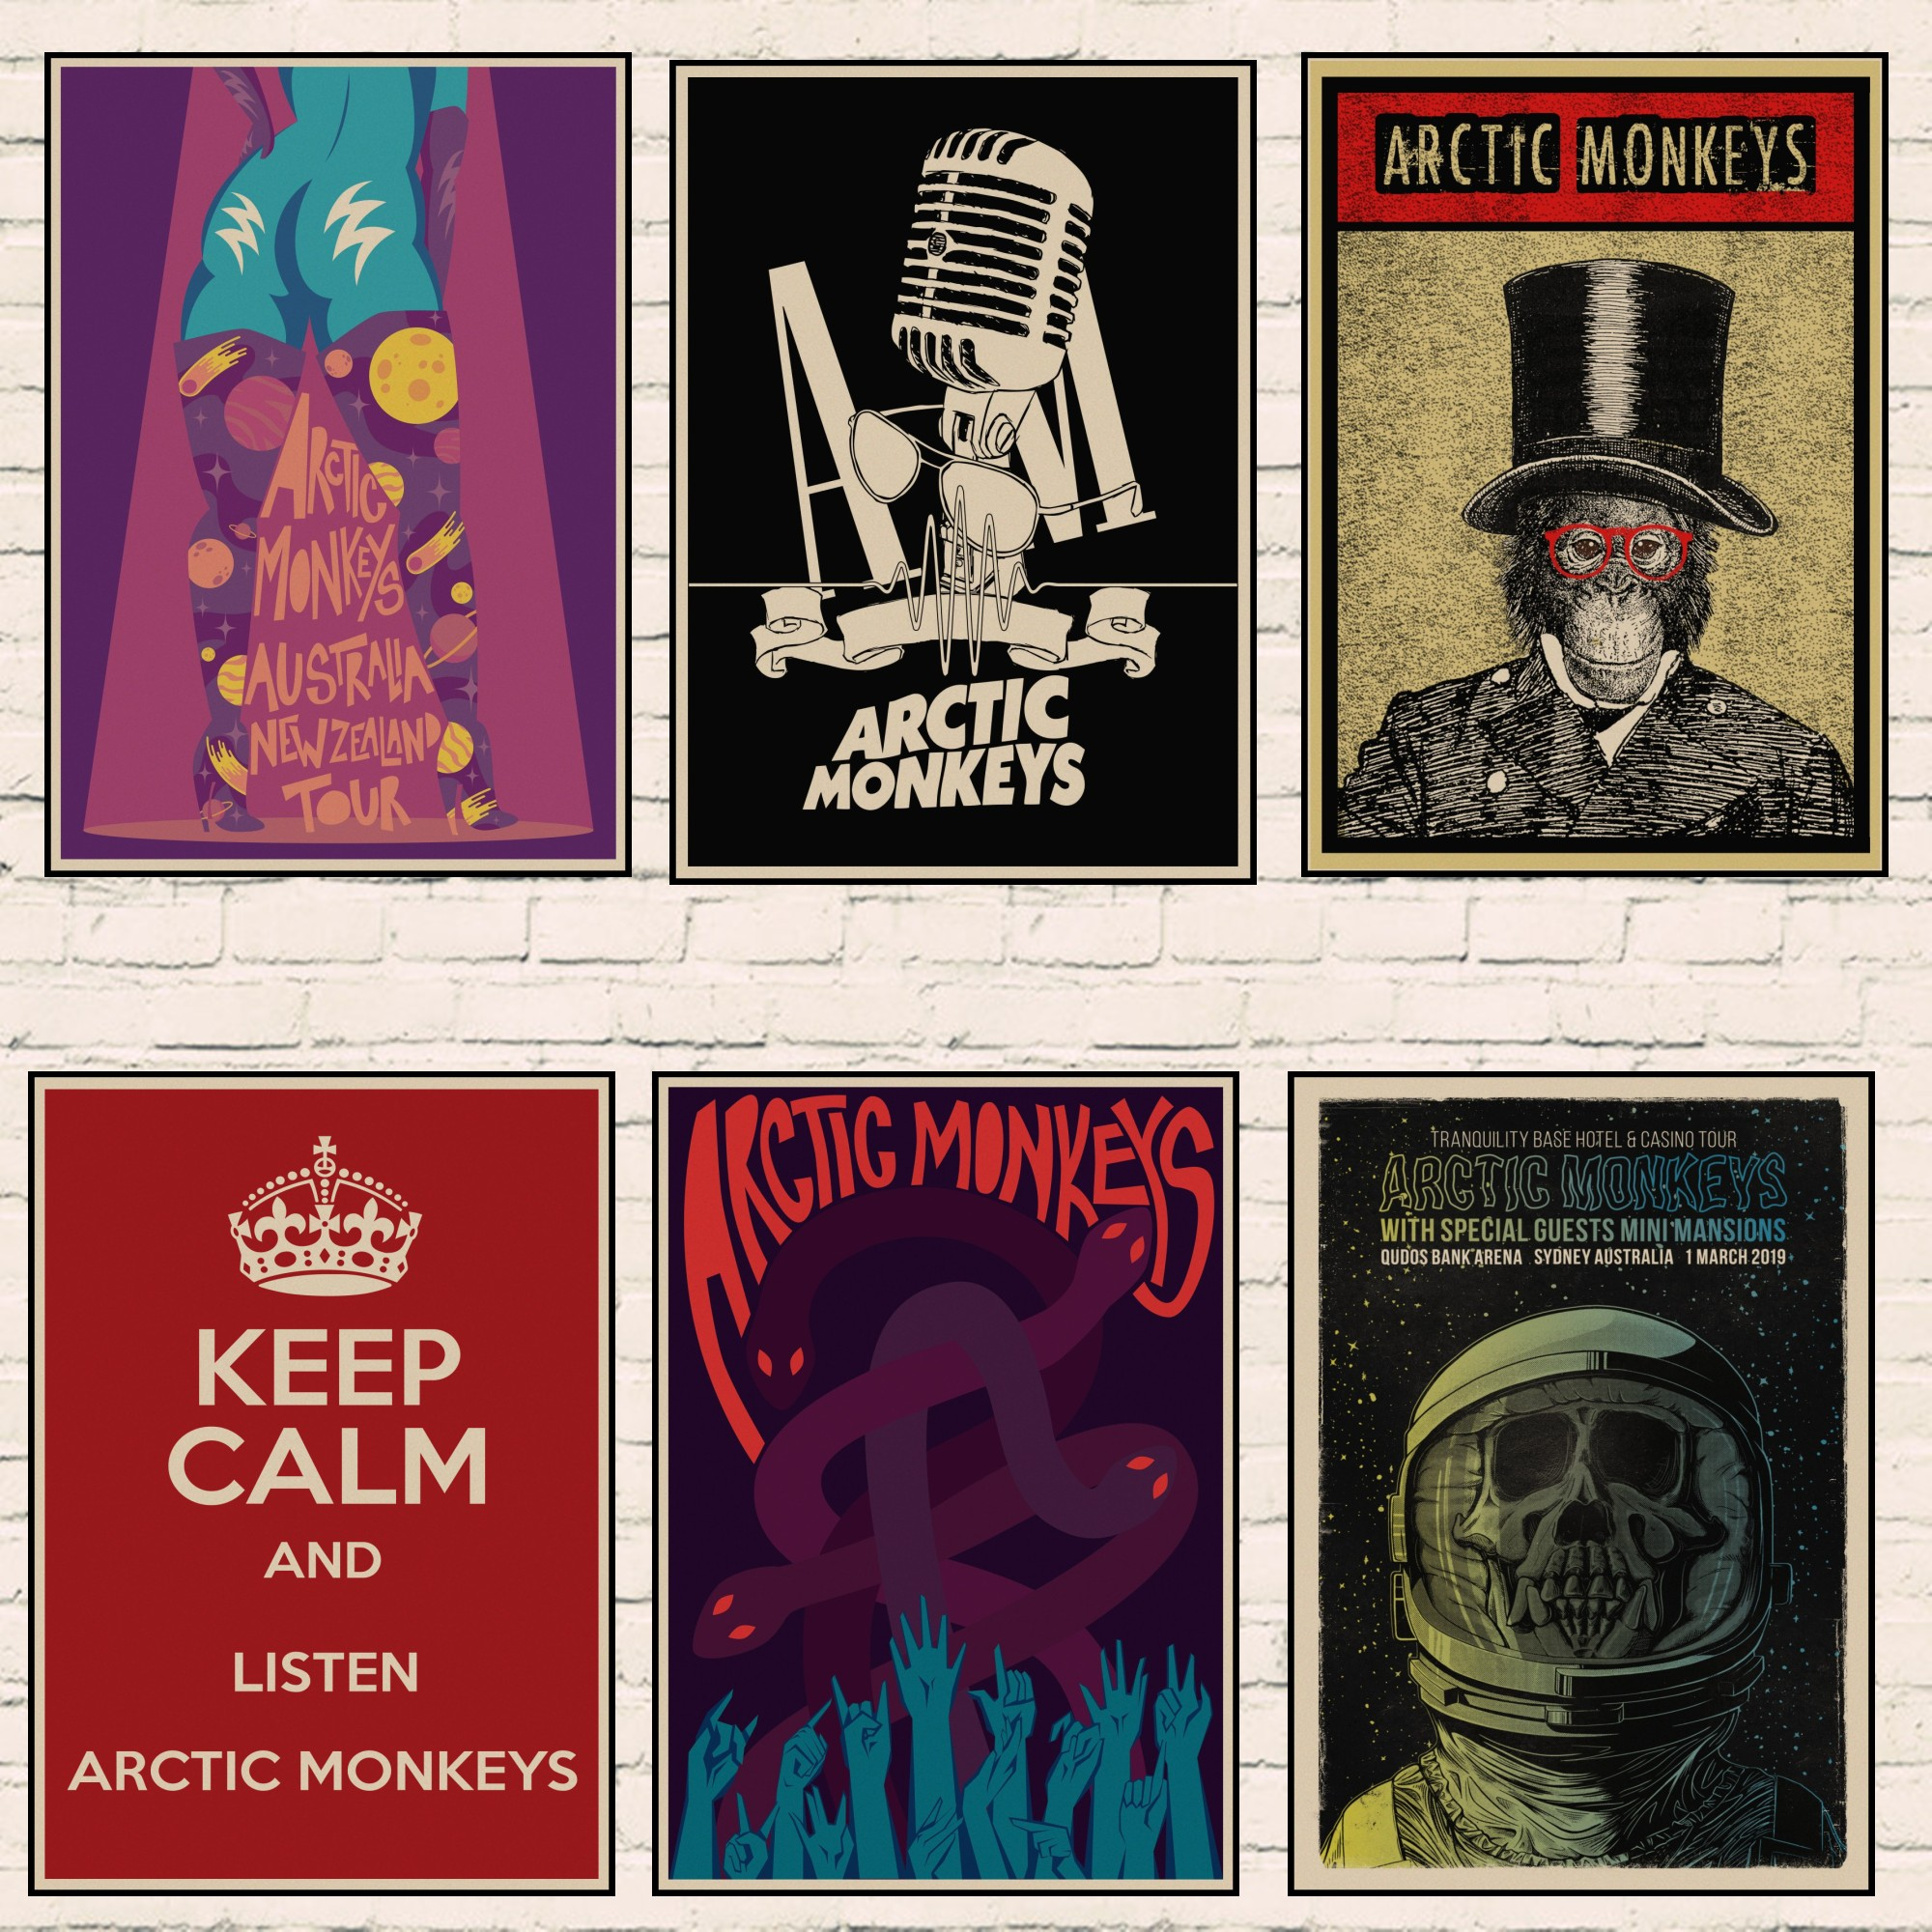 the arctic monkeys band music class arctic monkeys rockers retro kraft paper poster wall home bar posters home decor gift 01